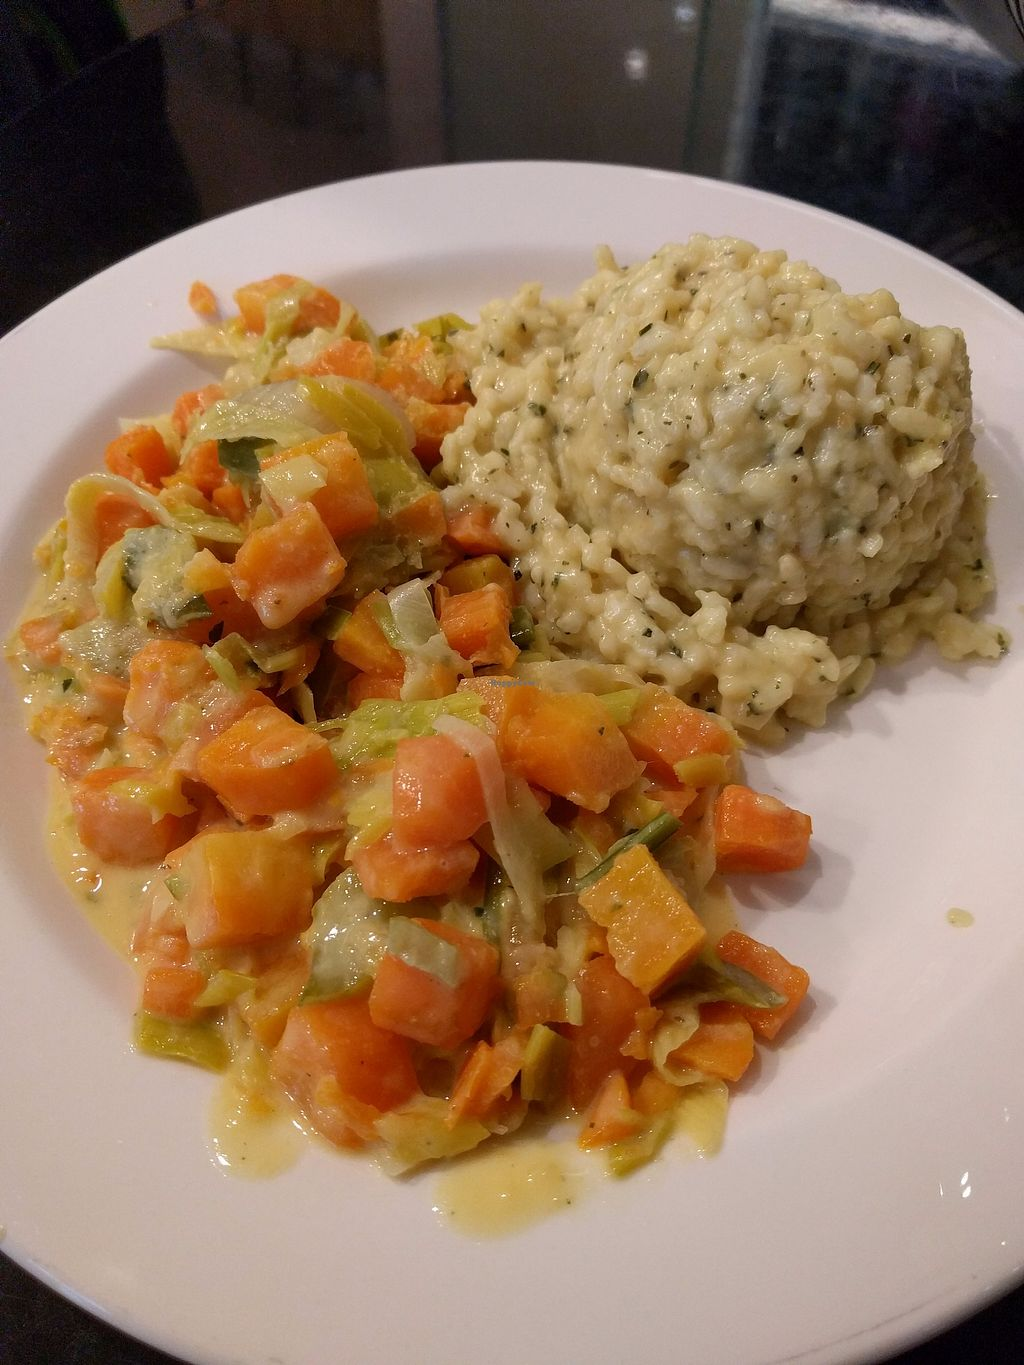 """Photo of Vier Linden Traiteur  by <a href=""""/members/profile/leanni"""">leanni</a> <br/>Vegan menu small 15.50 Fr. Super yummi Students 9.90 Fr <br/> December 11, 2017  - <a href='/contact/abuse/image/70670/334606'>Report</a>"""